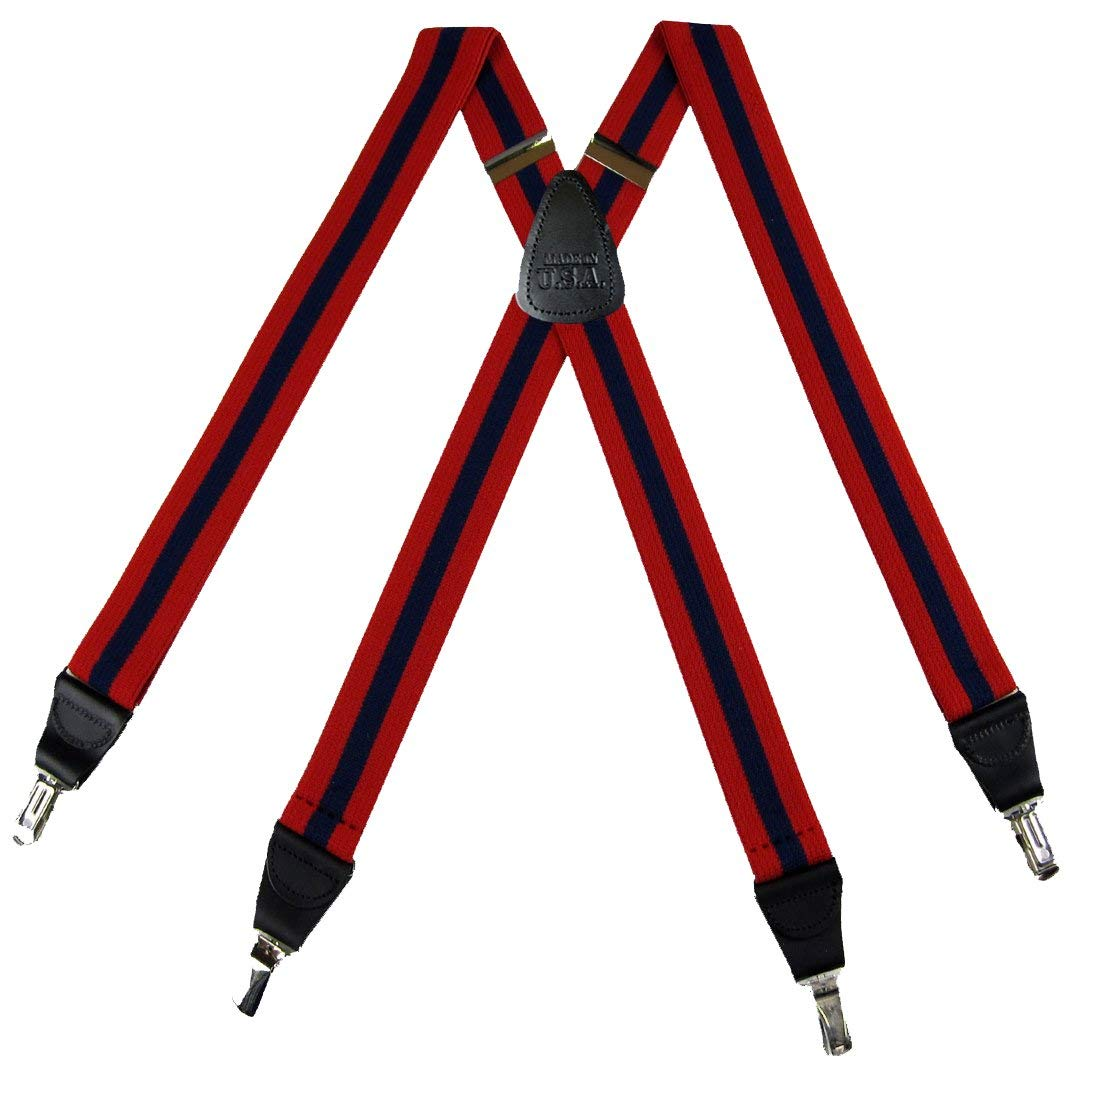 Navy Mens Solid Suspenders for pants trousers Made in the USA